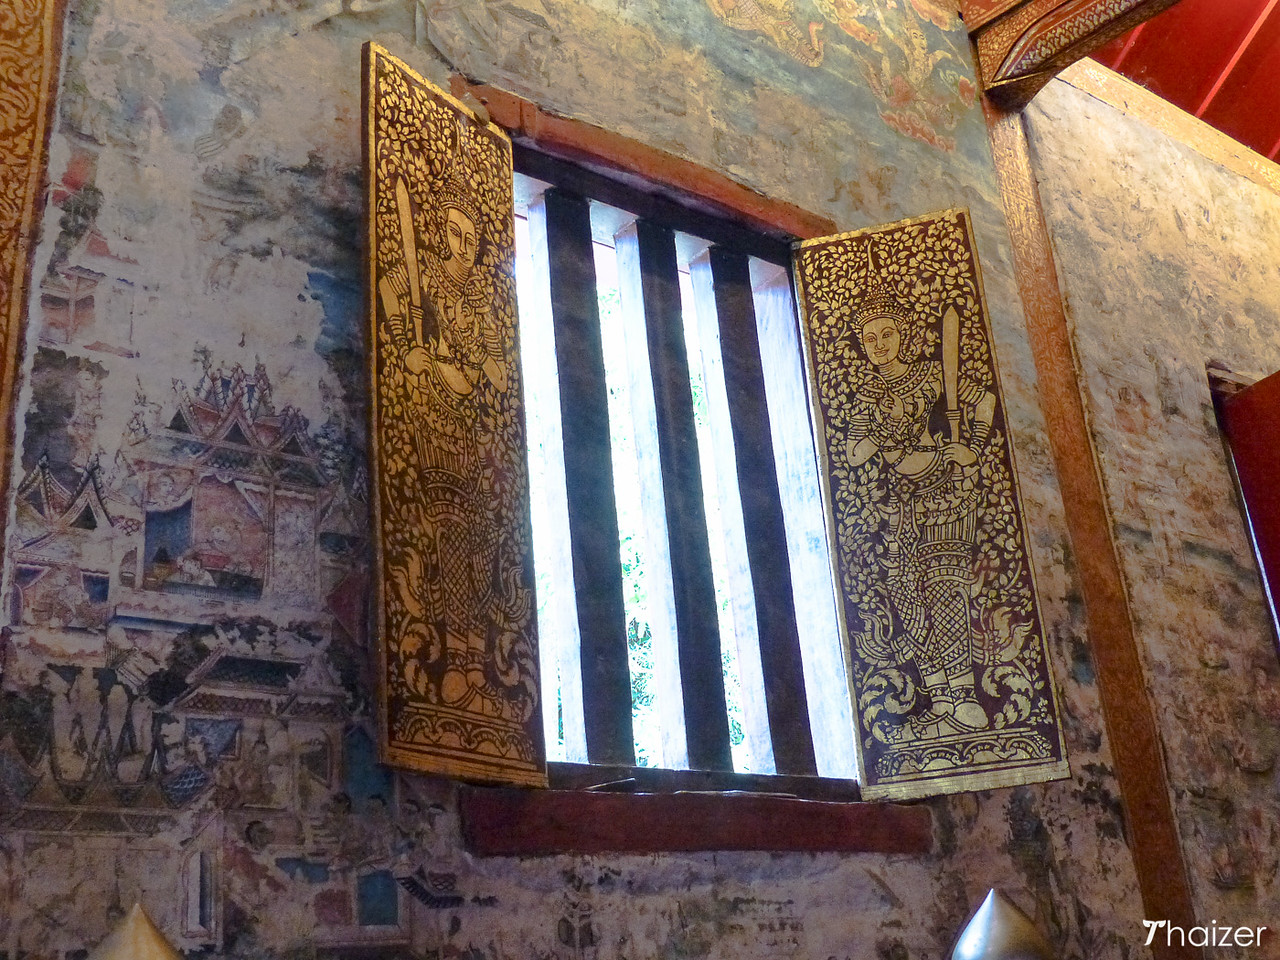 decorative windows and murals at Wat Phra Singh, Chiang Mai